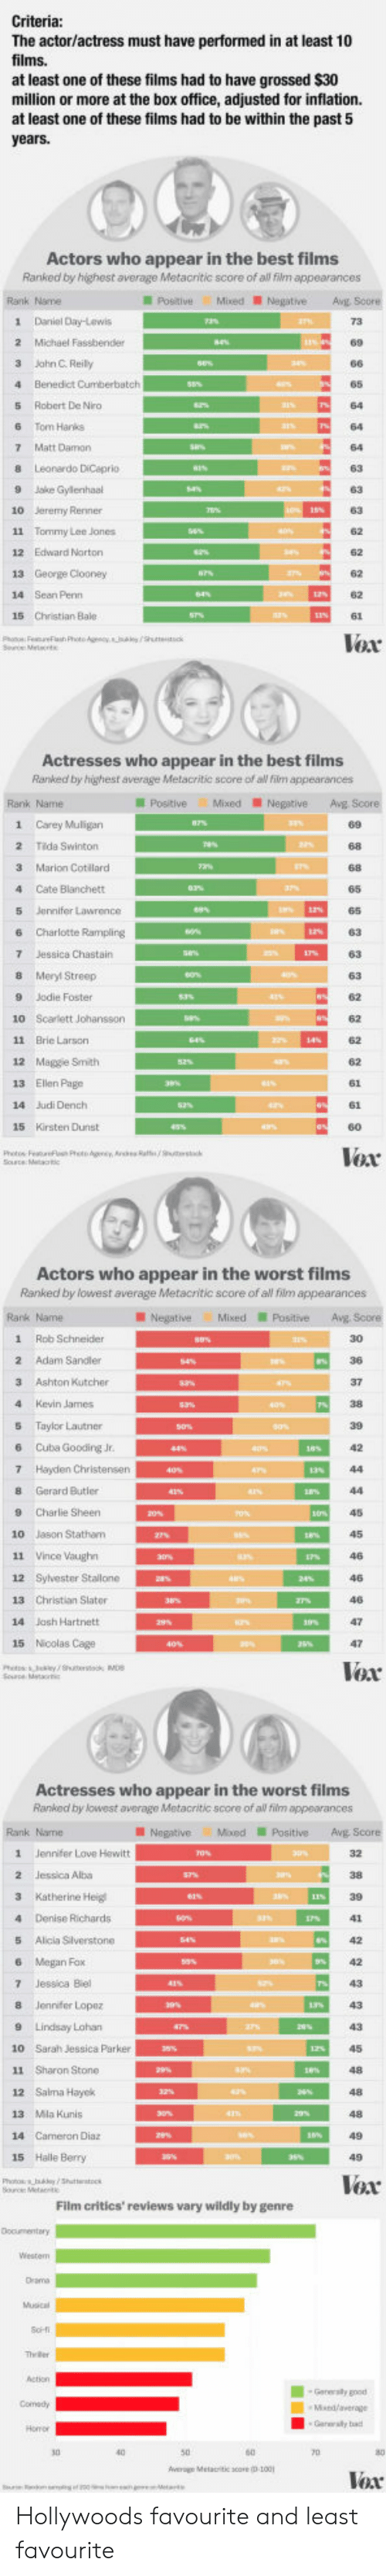 Kevin James: The actor/actress must have performed in at least 10  films.  at least one of these films had to have grossed $30  million or more at the box office, adjusted for inflation.  at least one of these films had to be within the past 5  Actor  s who appear in the best films  Ranked by highest average Metacritic score of all film appearances  Rank Name  PostiveMixed NegativeAg Score  1 Daniel Day-Lewis  2 Michael Fassbender  3 Jahn C Reily  4 Benedict Cunberbatch  5 Robert De Niro  6 Tom Hanks  7 Matt Damon  8 Leonardo DiCeprio  9 Jake Gylenhaal  10 Jeremy Renner  11 Tommy Lee Jones  12 Edward Norton  65  62  14 Sean Penn  15 Christian Bale  Vox  Actresses who appear in the best films  Ranked by highest average Metacritic score of al fiim appearances  PositiveMixedNegative Avg Score  1 Carey Muligan  89  2 Tida Swinton  3 Marion Cotllard  4 Cate Blanchett  5 Jennifer Lawrence  6 Charlotte Rampling  63  8 Meryl Streep  9 Jodie Foster  10 Scarlett Johansson  11 Brie Larson  12 Maggie Smith  13 Ellen Page  14 Judi Dench  15 Kirsten Dunst  62  62  62  62  6  Voar  Actors who appear in the worst films  Ranked by lowest average Metacntic score of al fim appearances  Rank Name  Negative MixedPositive Avg Score  1 Rob Schneider  2 Adam Sandler  3 Ashton Kutcher  4 Kevin James  5 Taylor Lautner  6 Cuba Gooding Jr.  7 Hayden Christensen  8 Gerard Butler  30  9 Charlie Sheen ESI,  45  10 Jason Statham  12 Syvester Stallone  13 Christian Slater  14 Jash Hartnett  15 Nicolas Cage  Vox  Actresses who appear in the worst films  Ranked by lowest average Metacritic score of all film appearances  Rank Name  NegativeMxedPositiveAvE Score  1  Jennifer Love Hewitt  2 Jessica Alba  4 Denise Richards  5 Alica Slverstone  6 Megan Fox  7 Jessica Biel  8 Jennifer Lopez  9 Lindsay Lohan  10 Sarah Jessica Parker  11 Sharon Stone  12 Salma Hayck  13 Mla Kunis  14 Cameron Diaz  15 Halle Berry  43  48  48  Voar  Film critics' reviews vary wildly by genre  Generaly b  verage Melacritic save